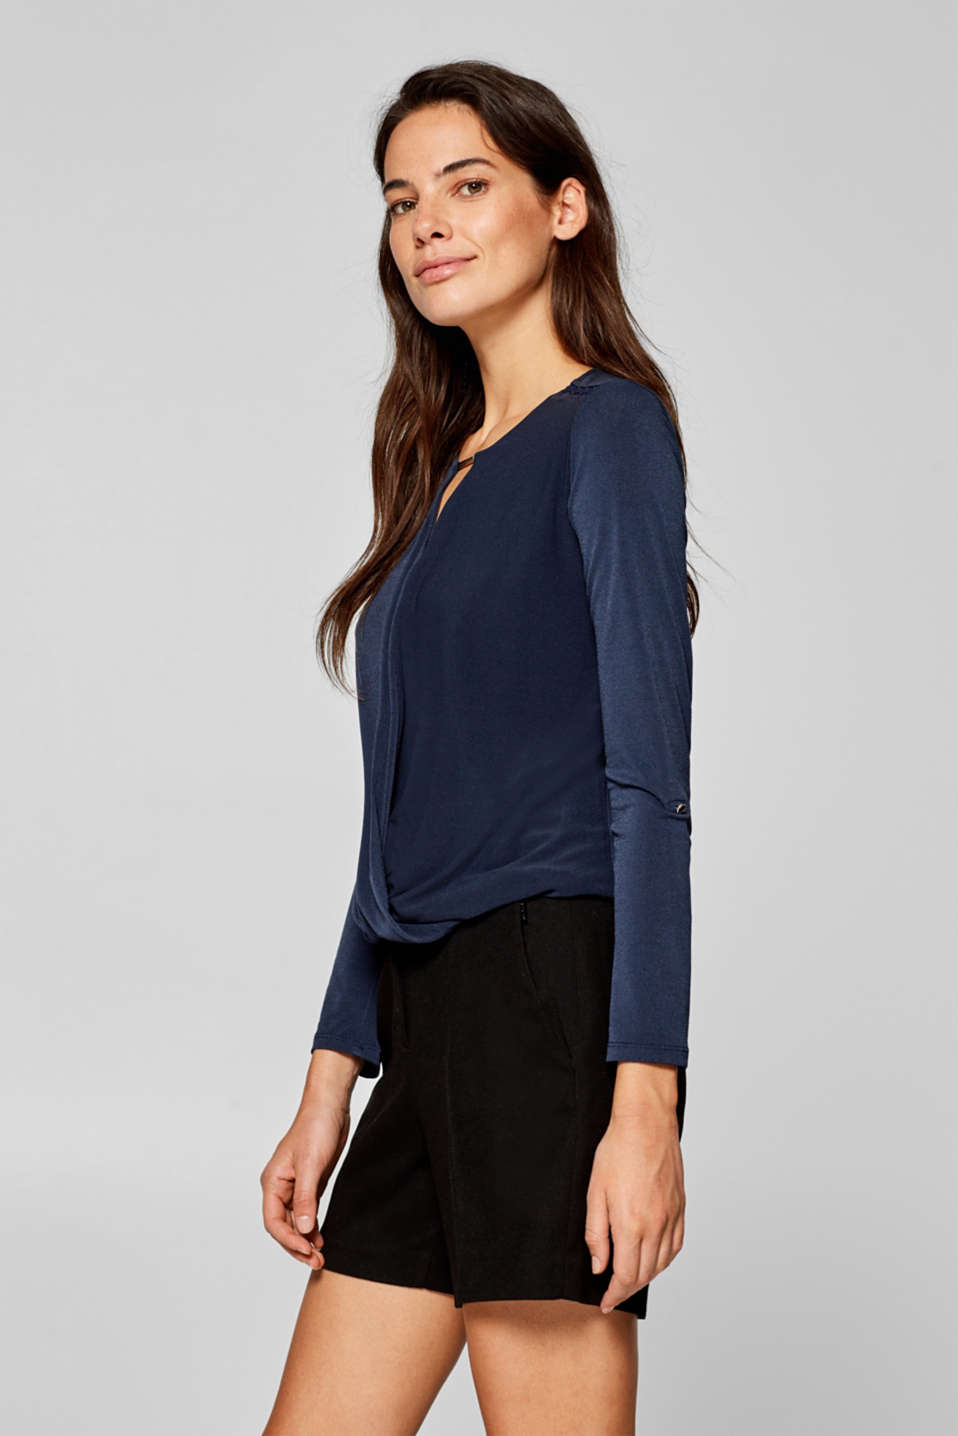 Stretchy long sleeve top with decorative details, NAVY, detail image number 5